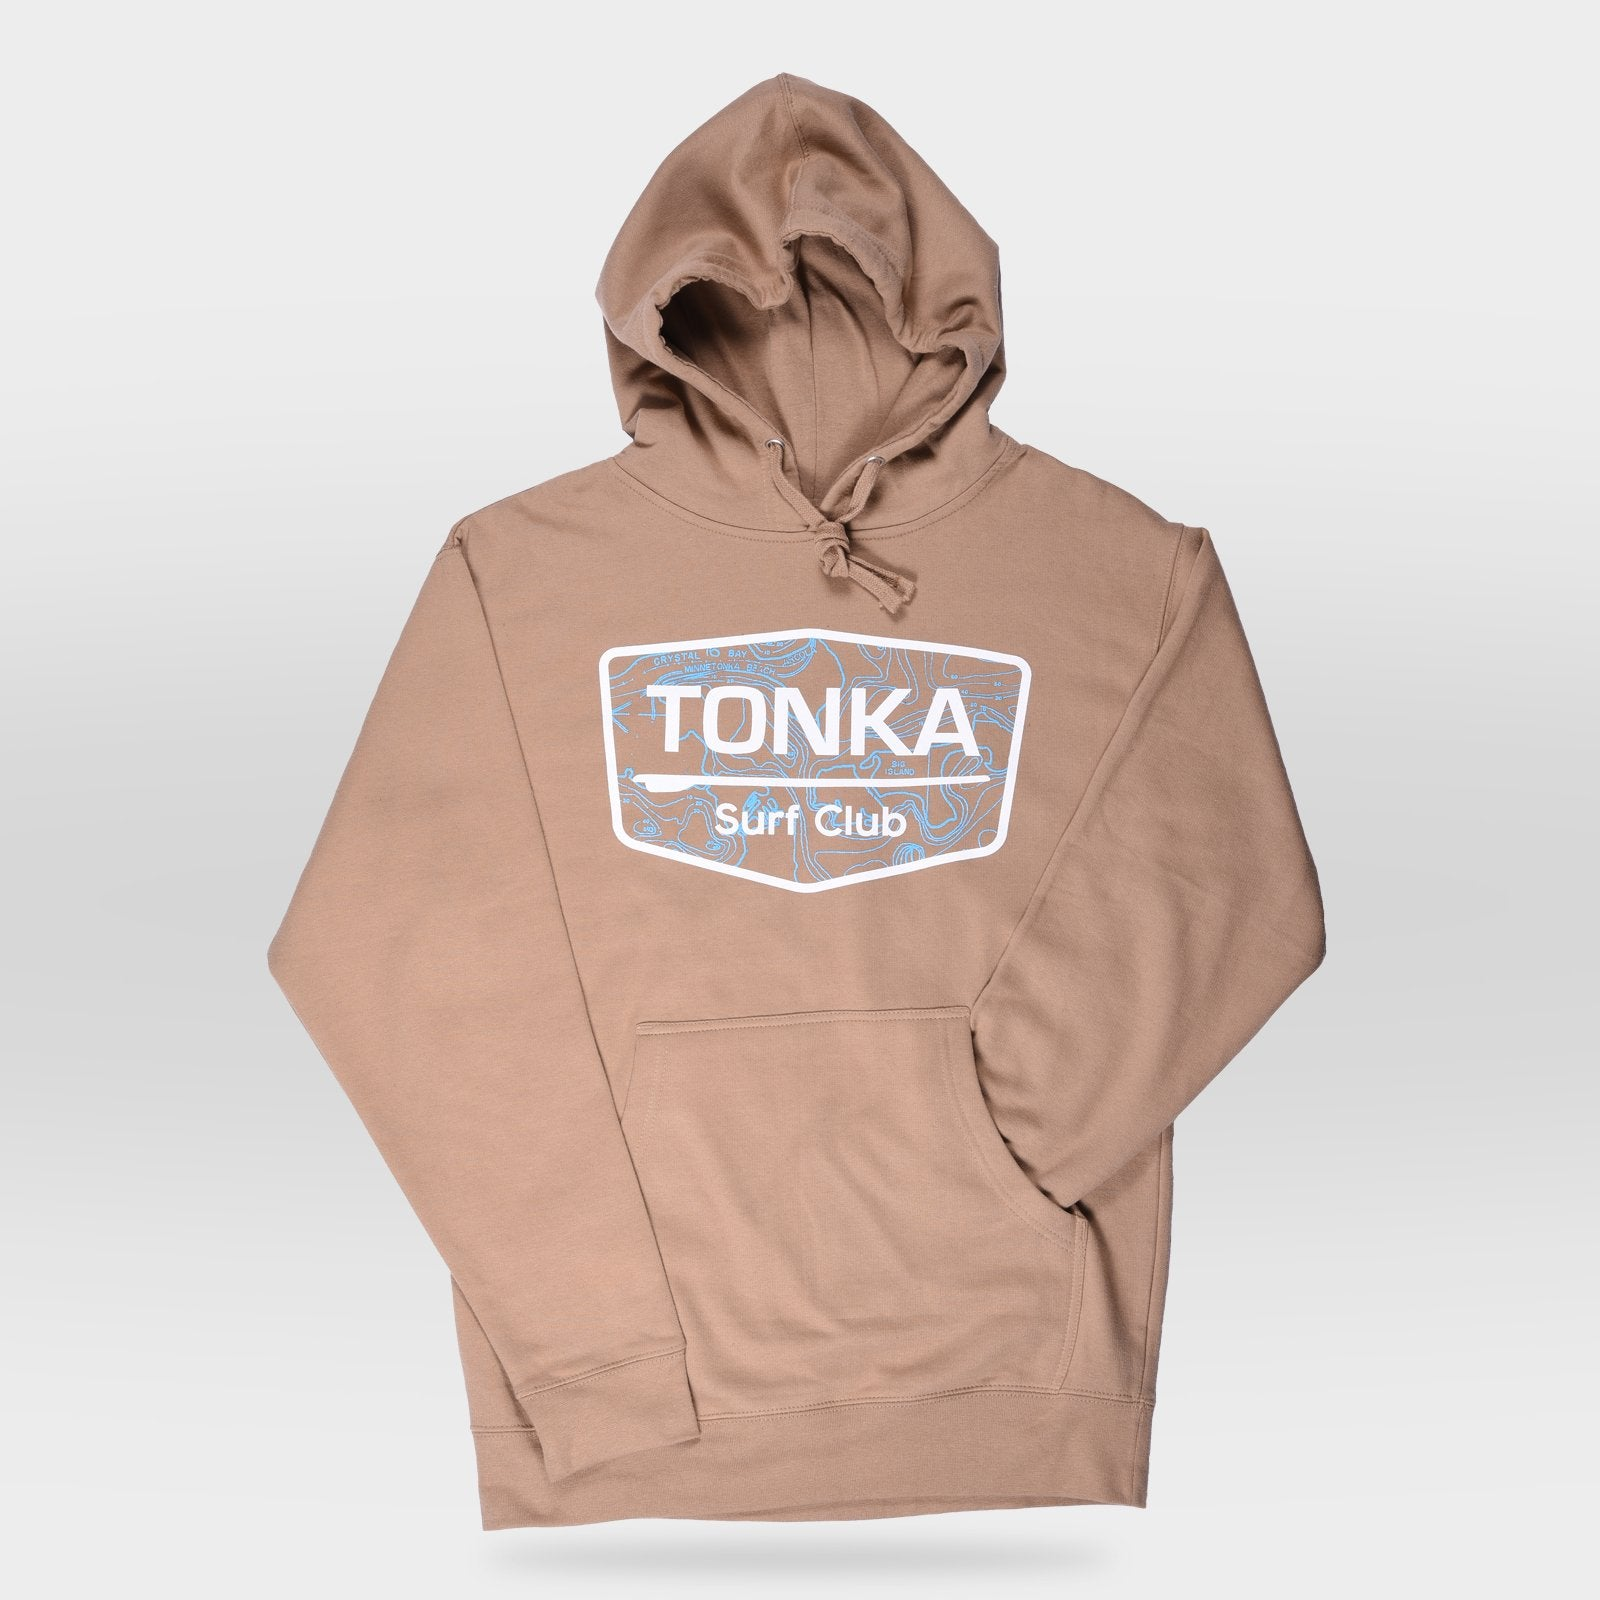 Light Brown Men's TONKA Surf Club Hoodie Sweatshirt